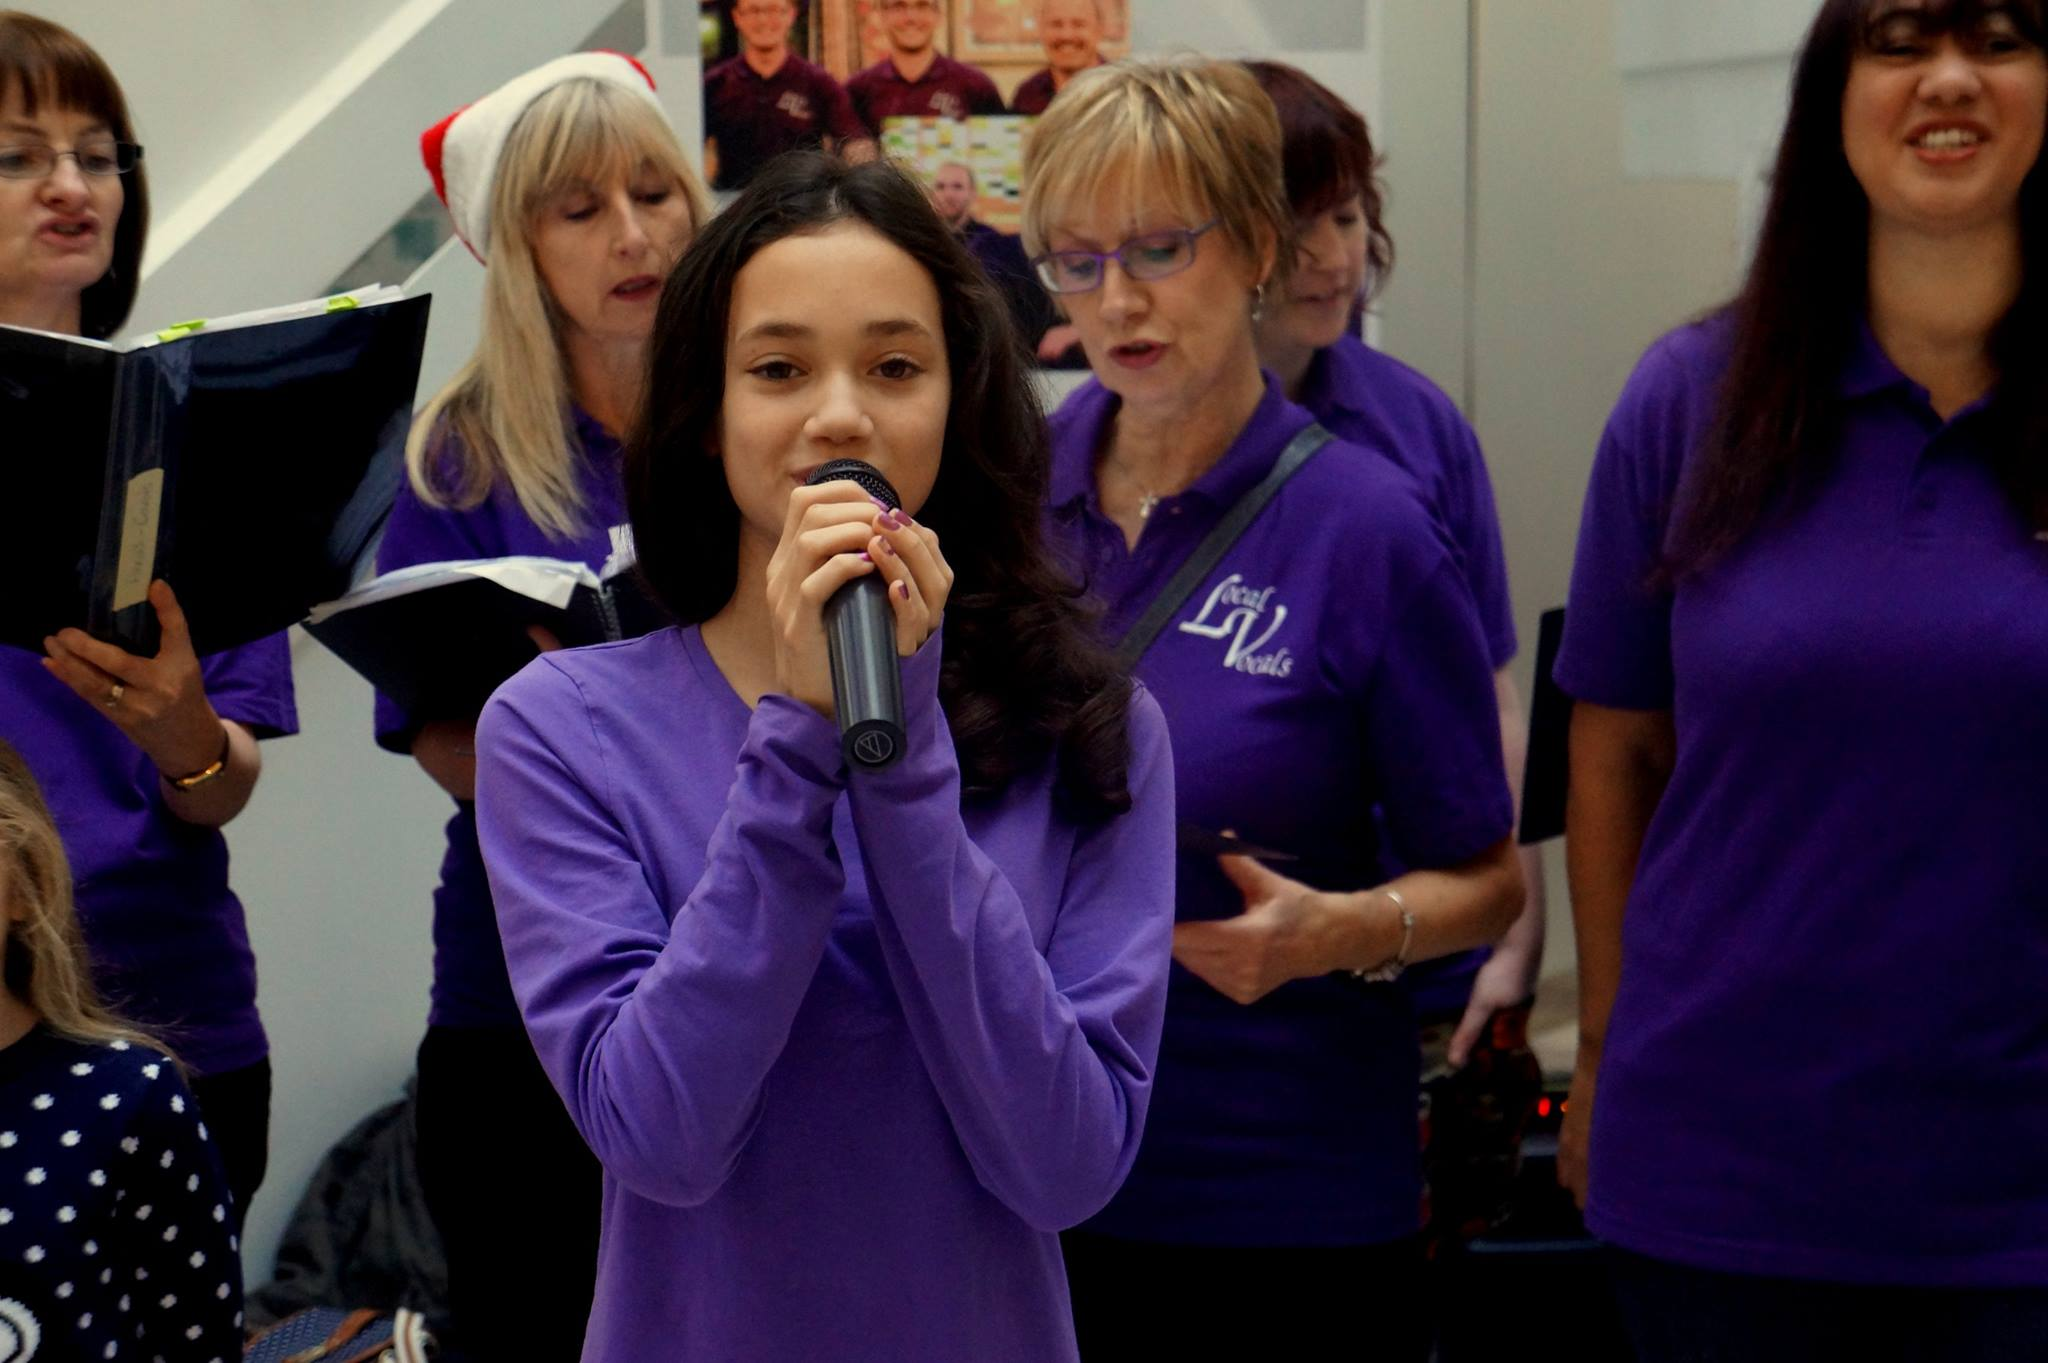 Local Vocals at West Orchards